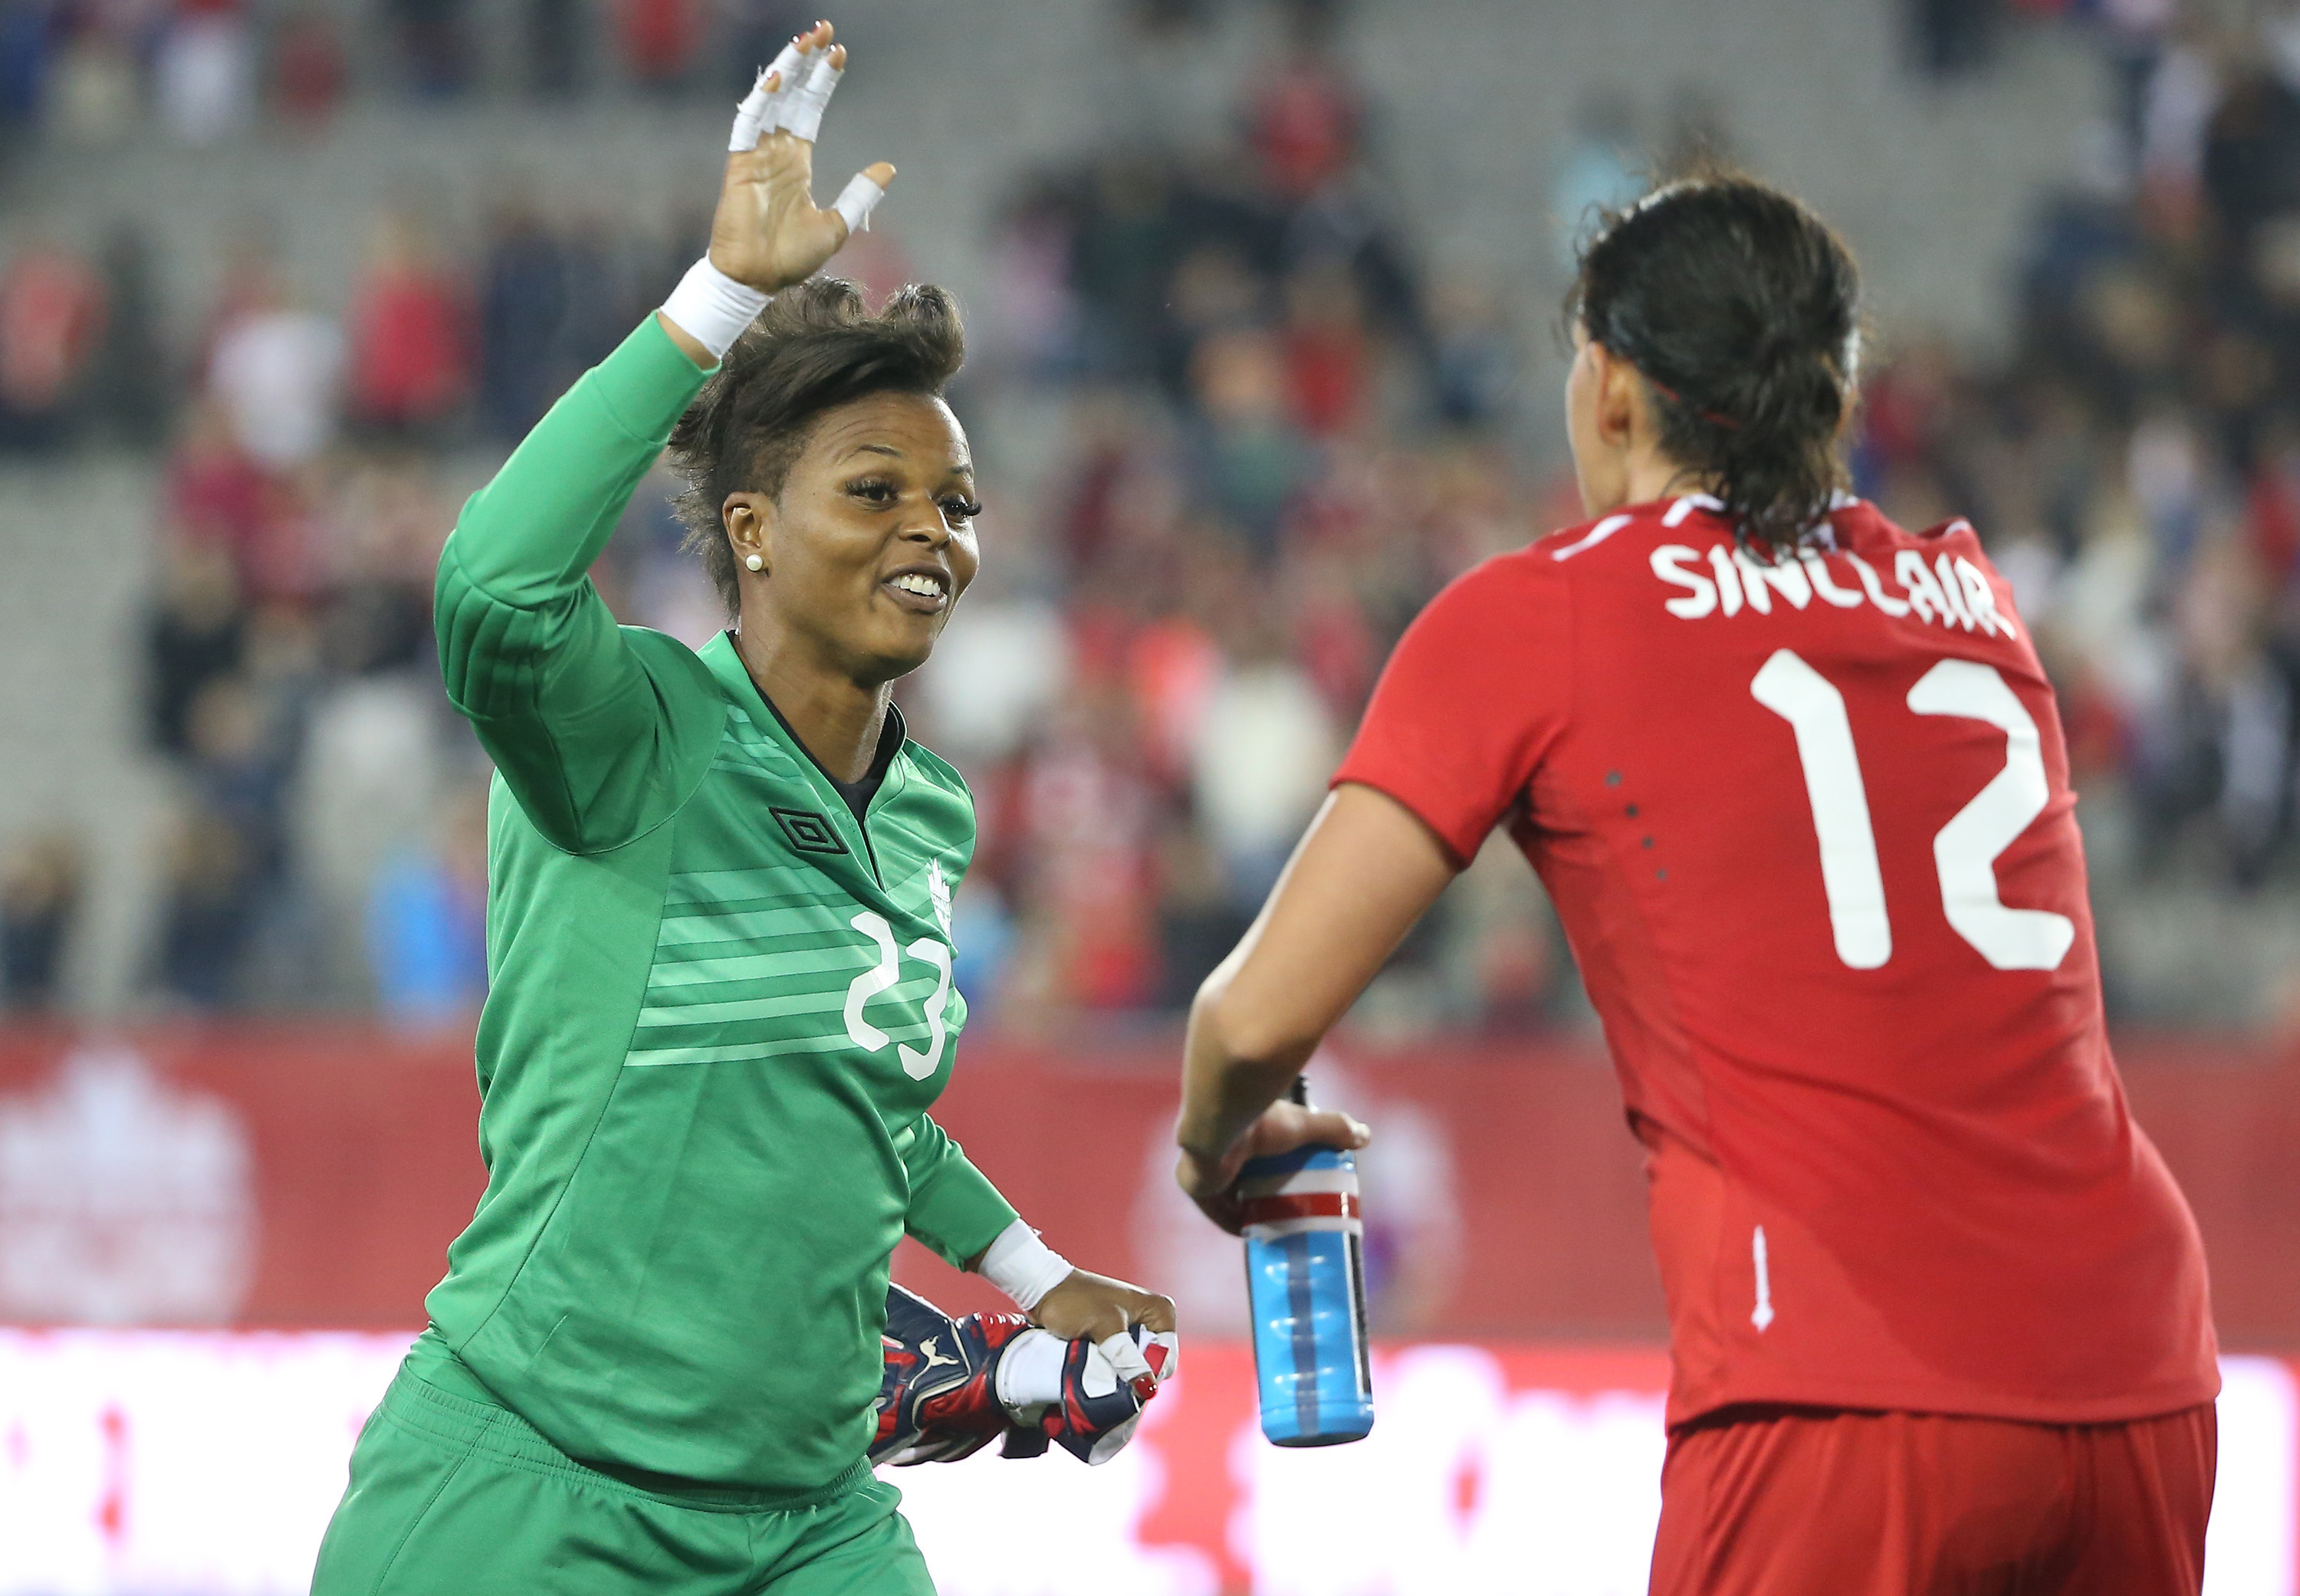 HAMILTON, CANADA - MAY 29: Karina LeBlanc #23 of Canada celebrates their victory with Christine Sinclair #12 against England during their Women's International Friendly match on May 29, 2015 at Tim Hortons Field in Hamilton, Ontario, Canada. (Photo by Tom Szczerbowski/Getty Images)